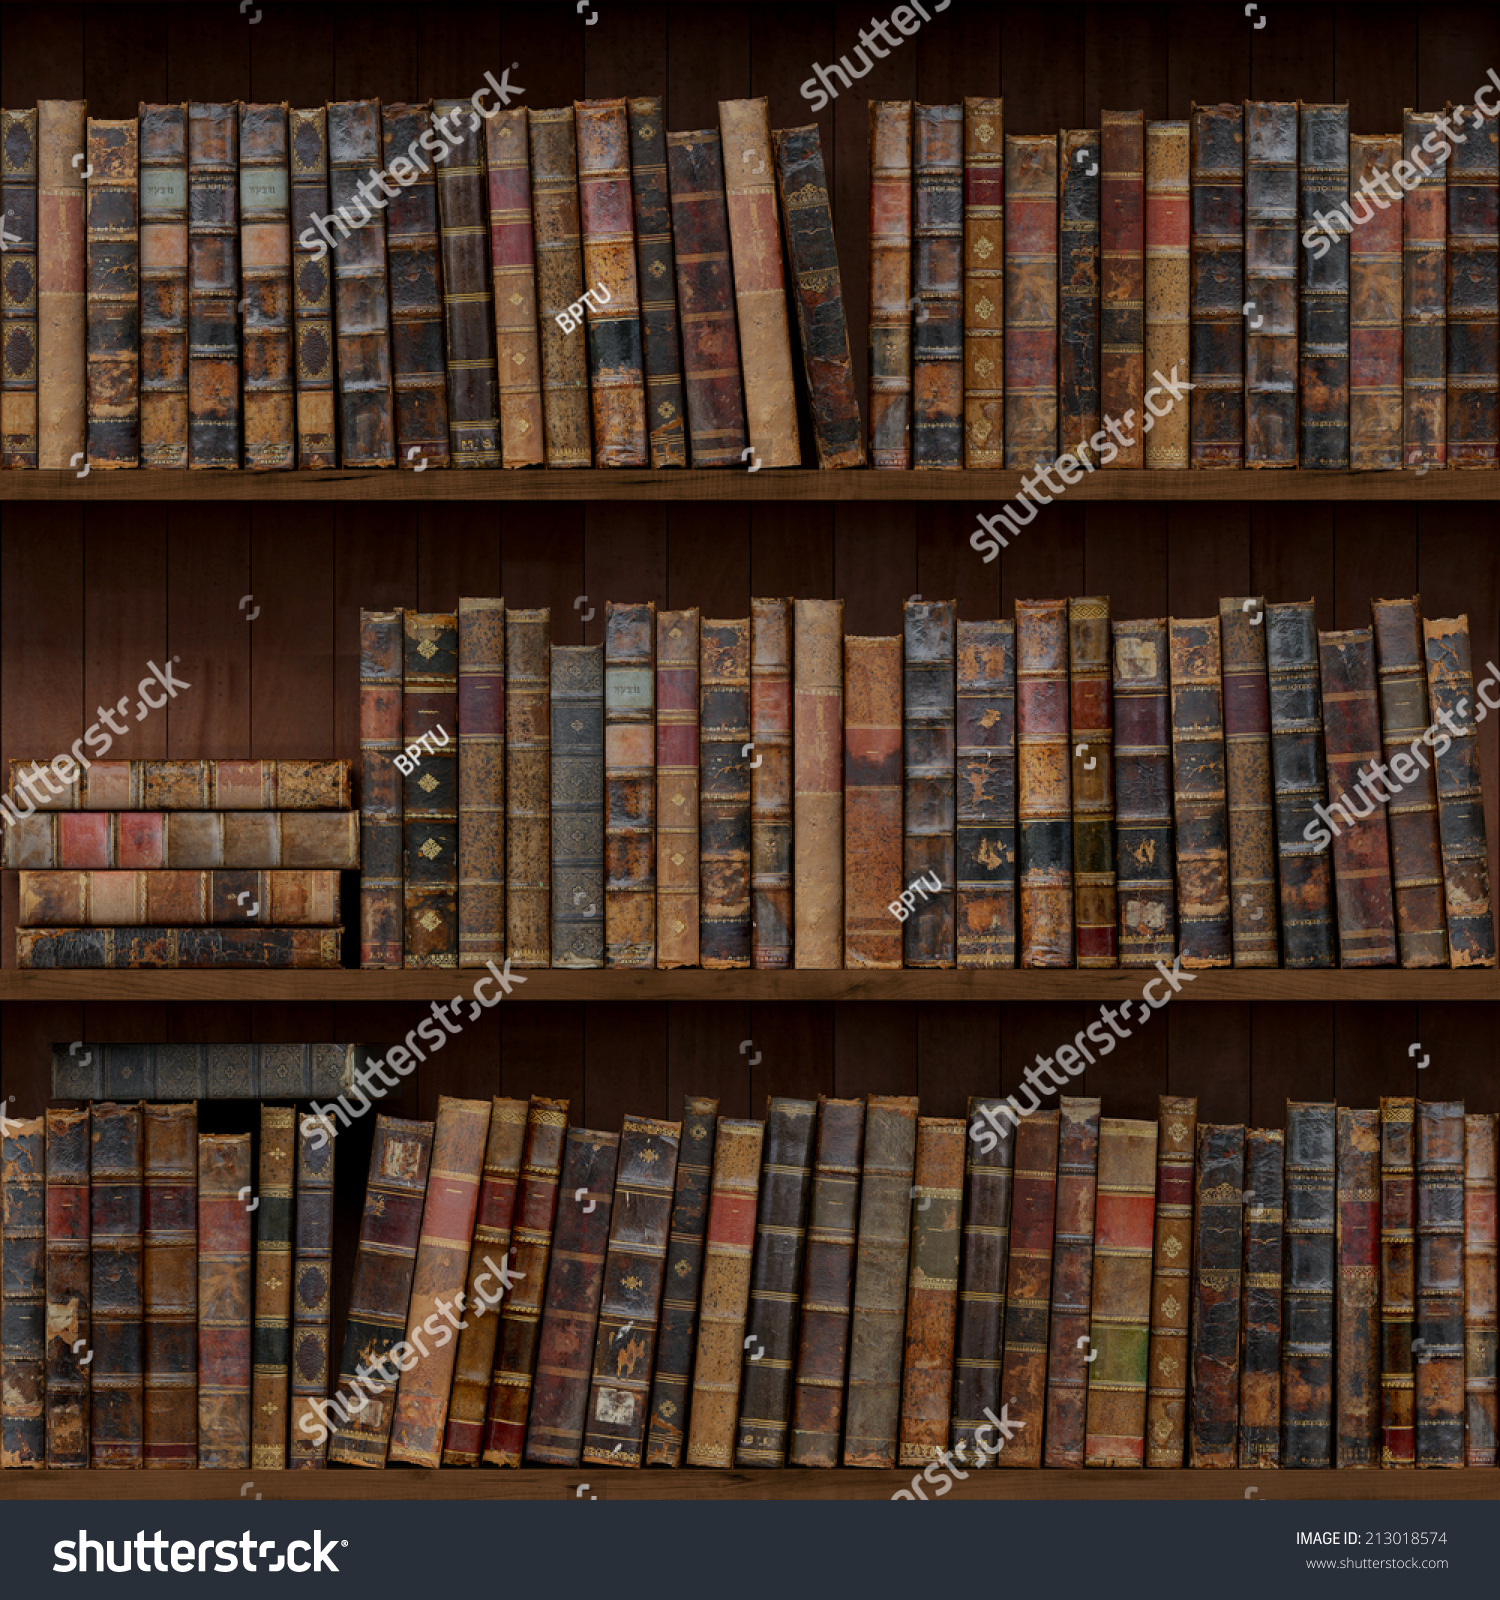 Hardcover Book Texture : Old books seamless texture stock illustration